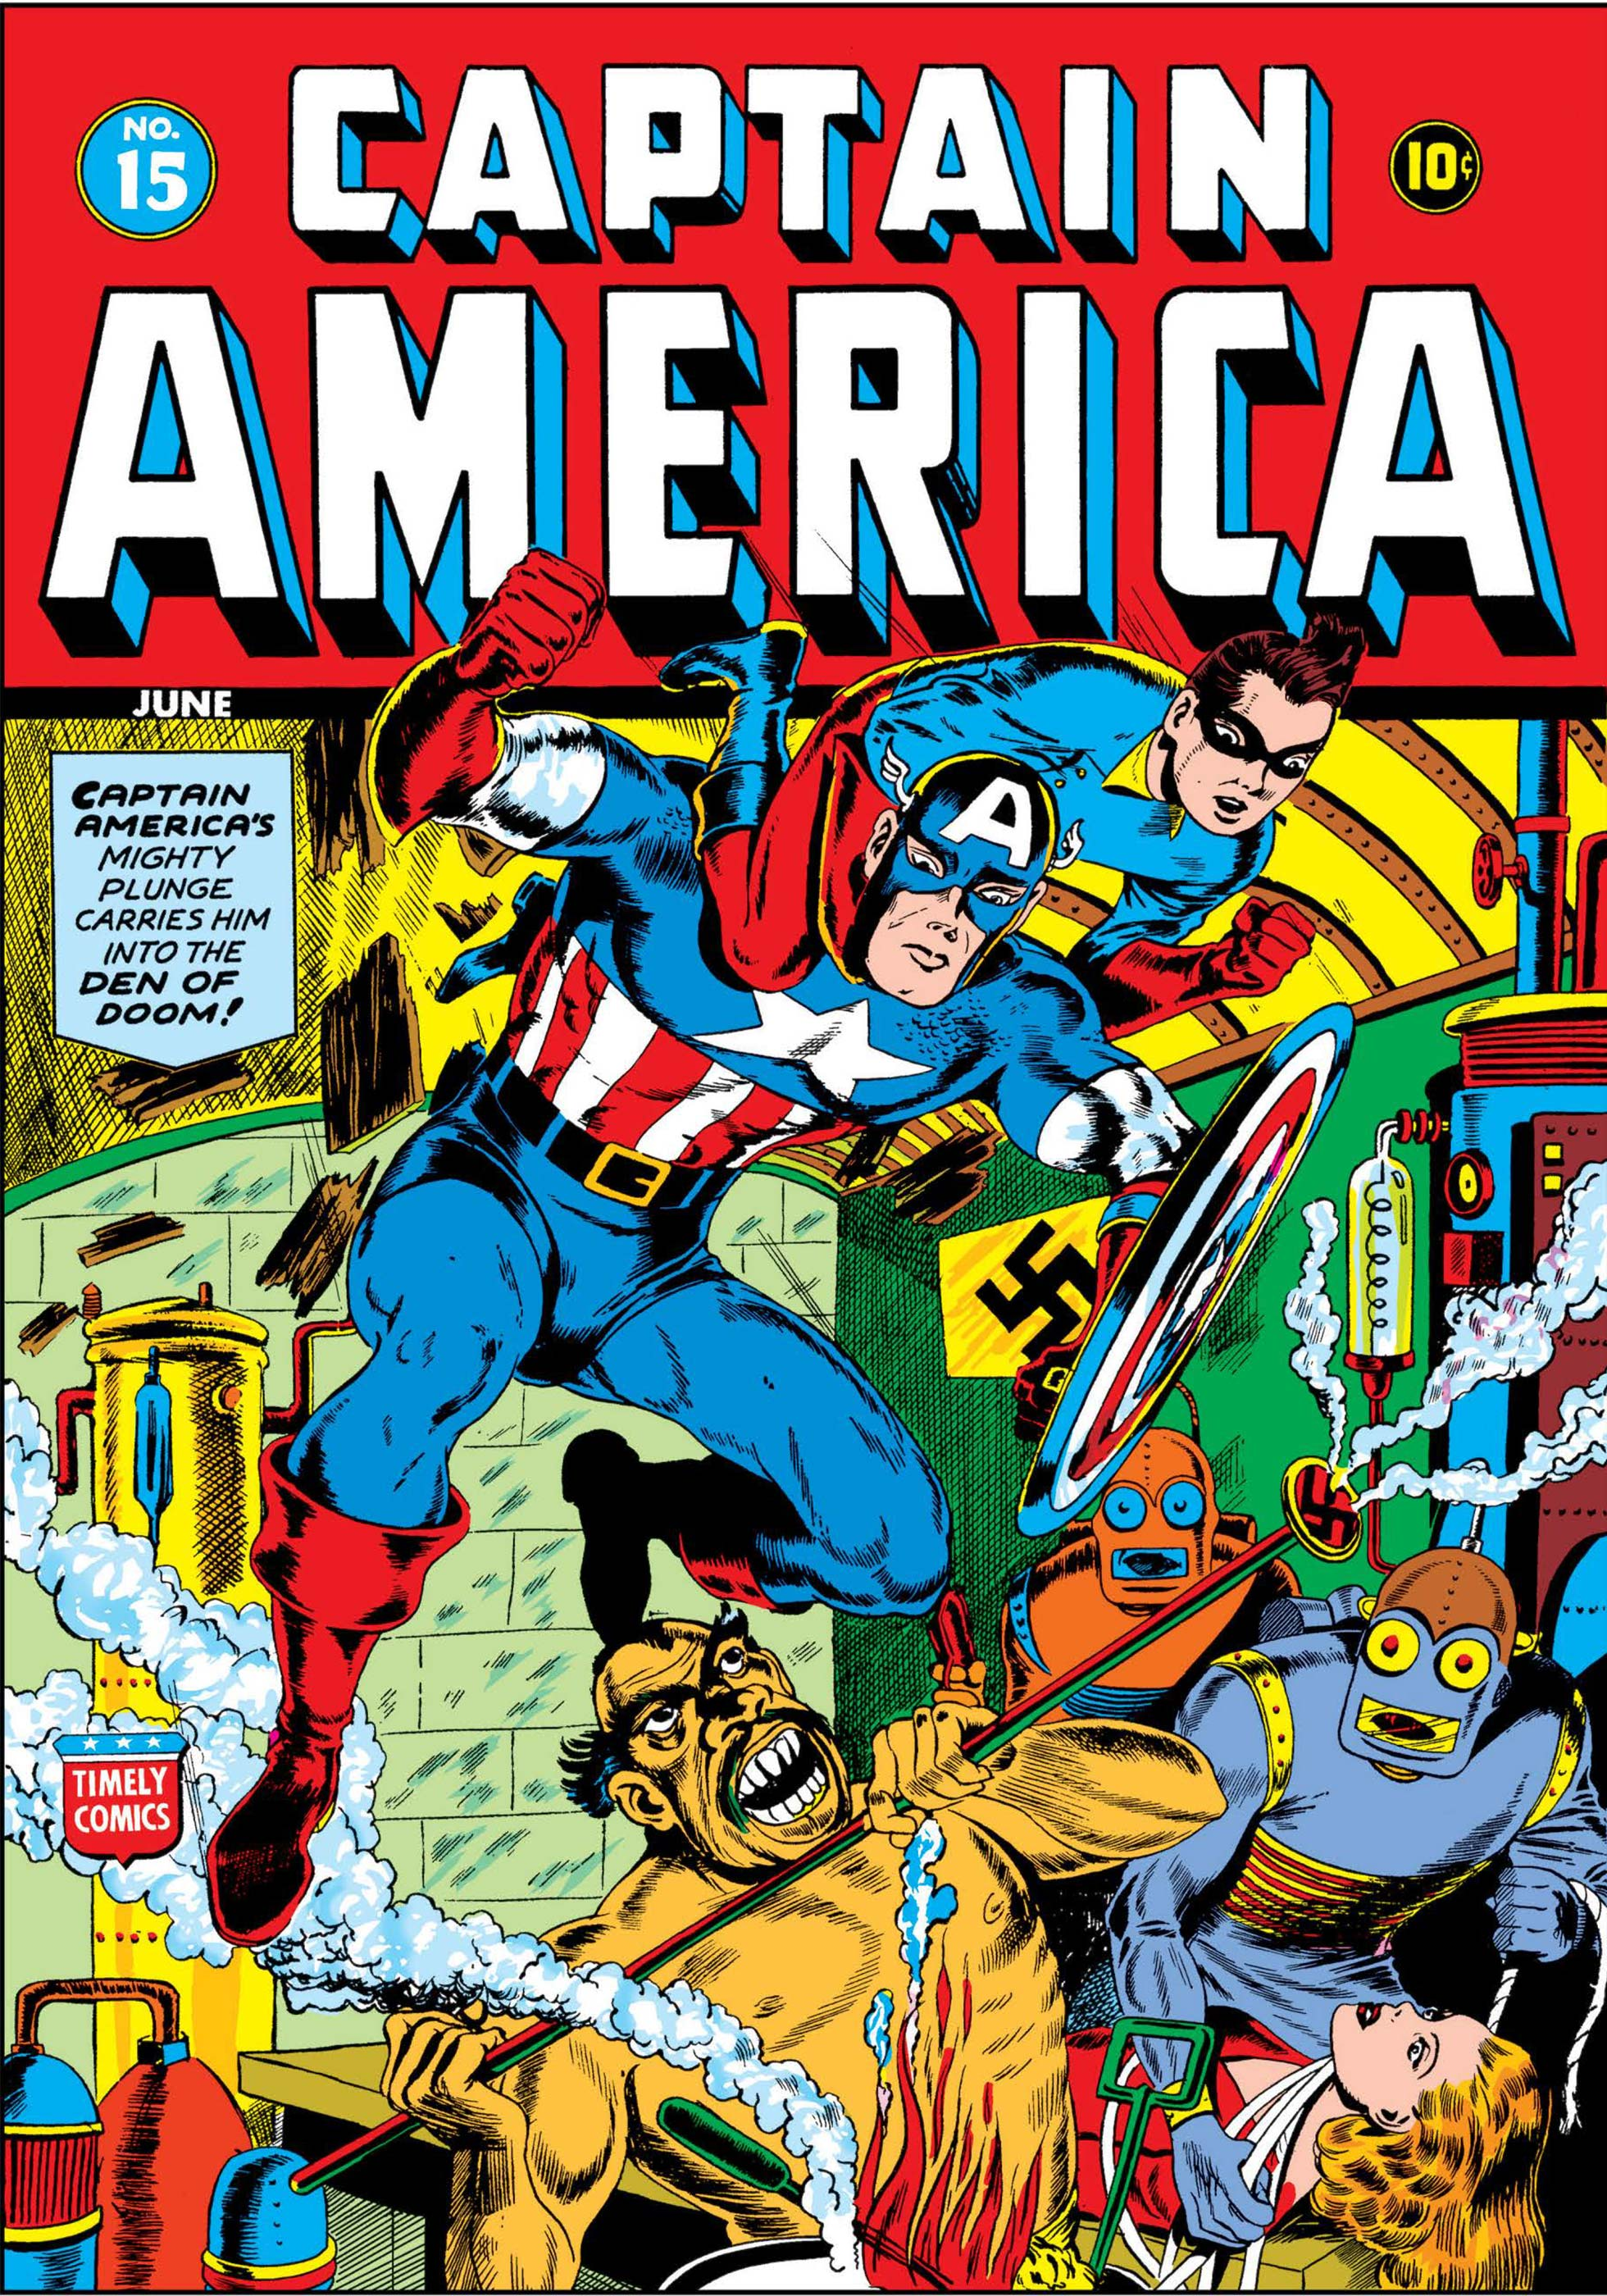 Captain America Comics (1941) #15